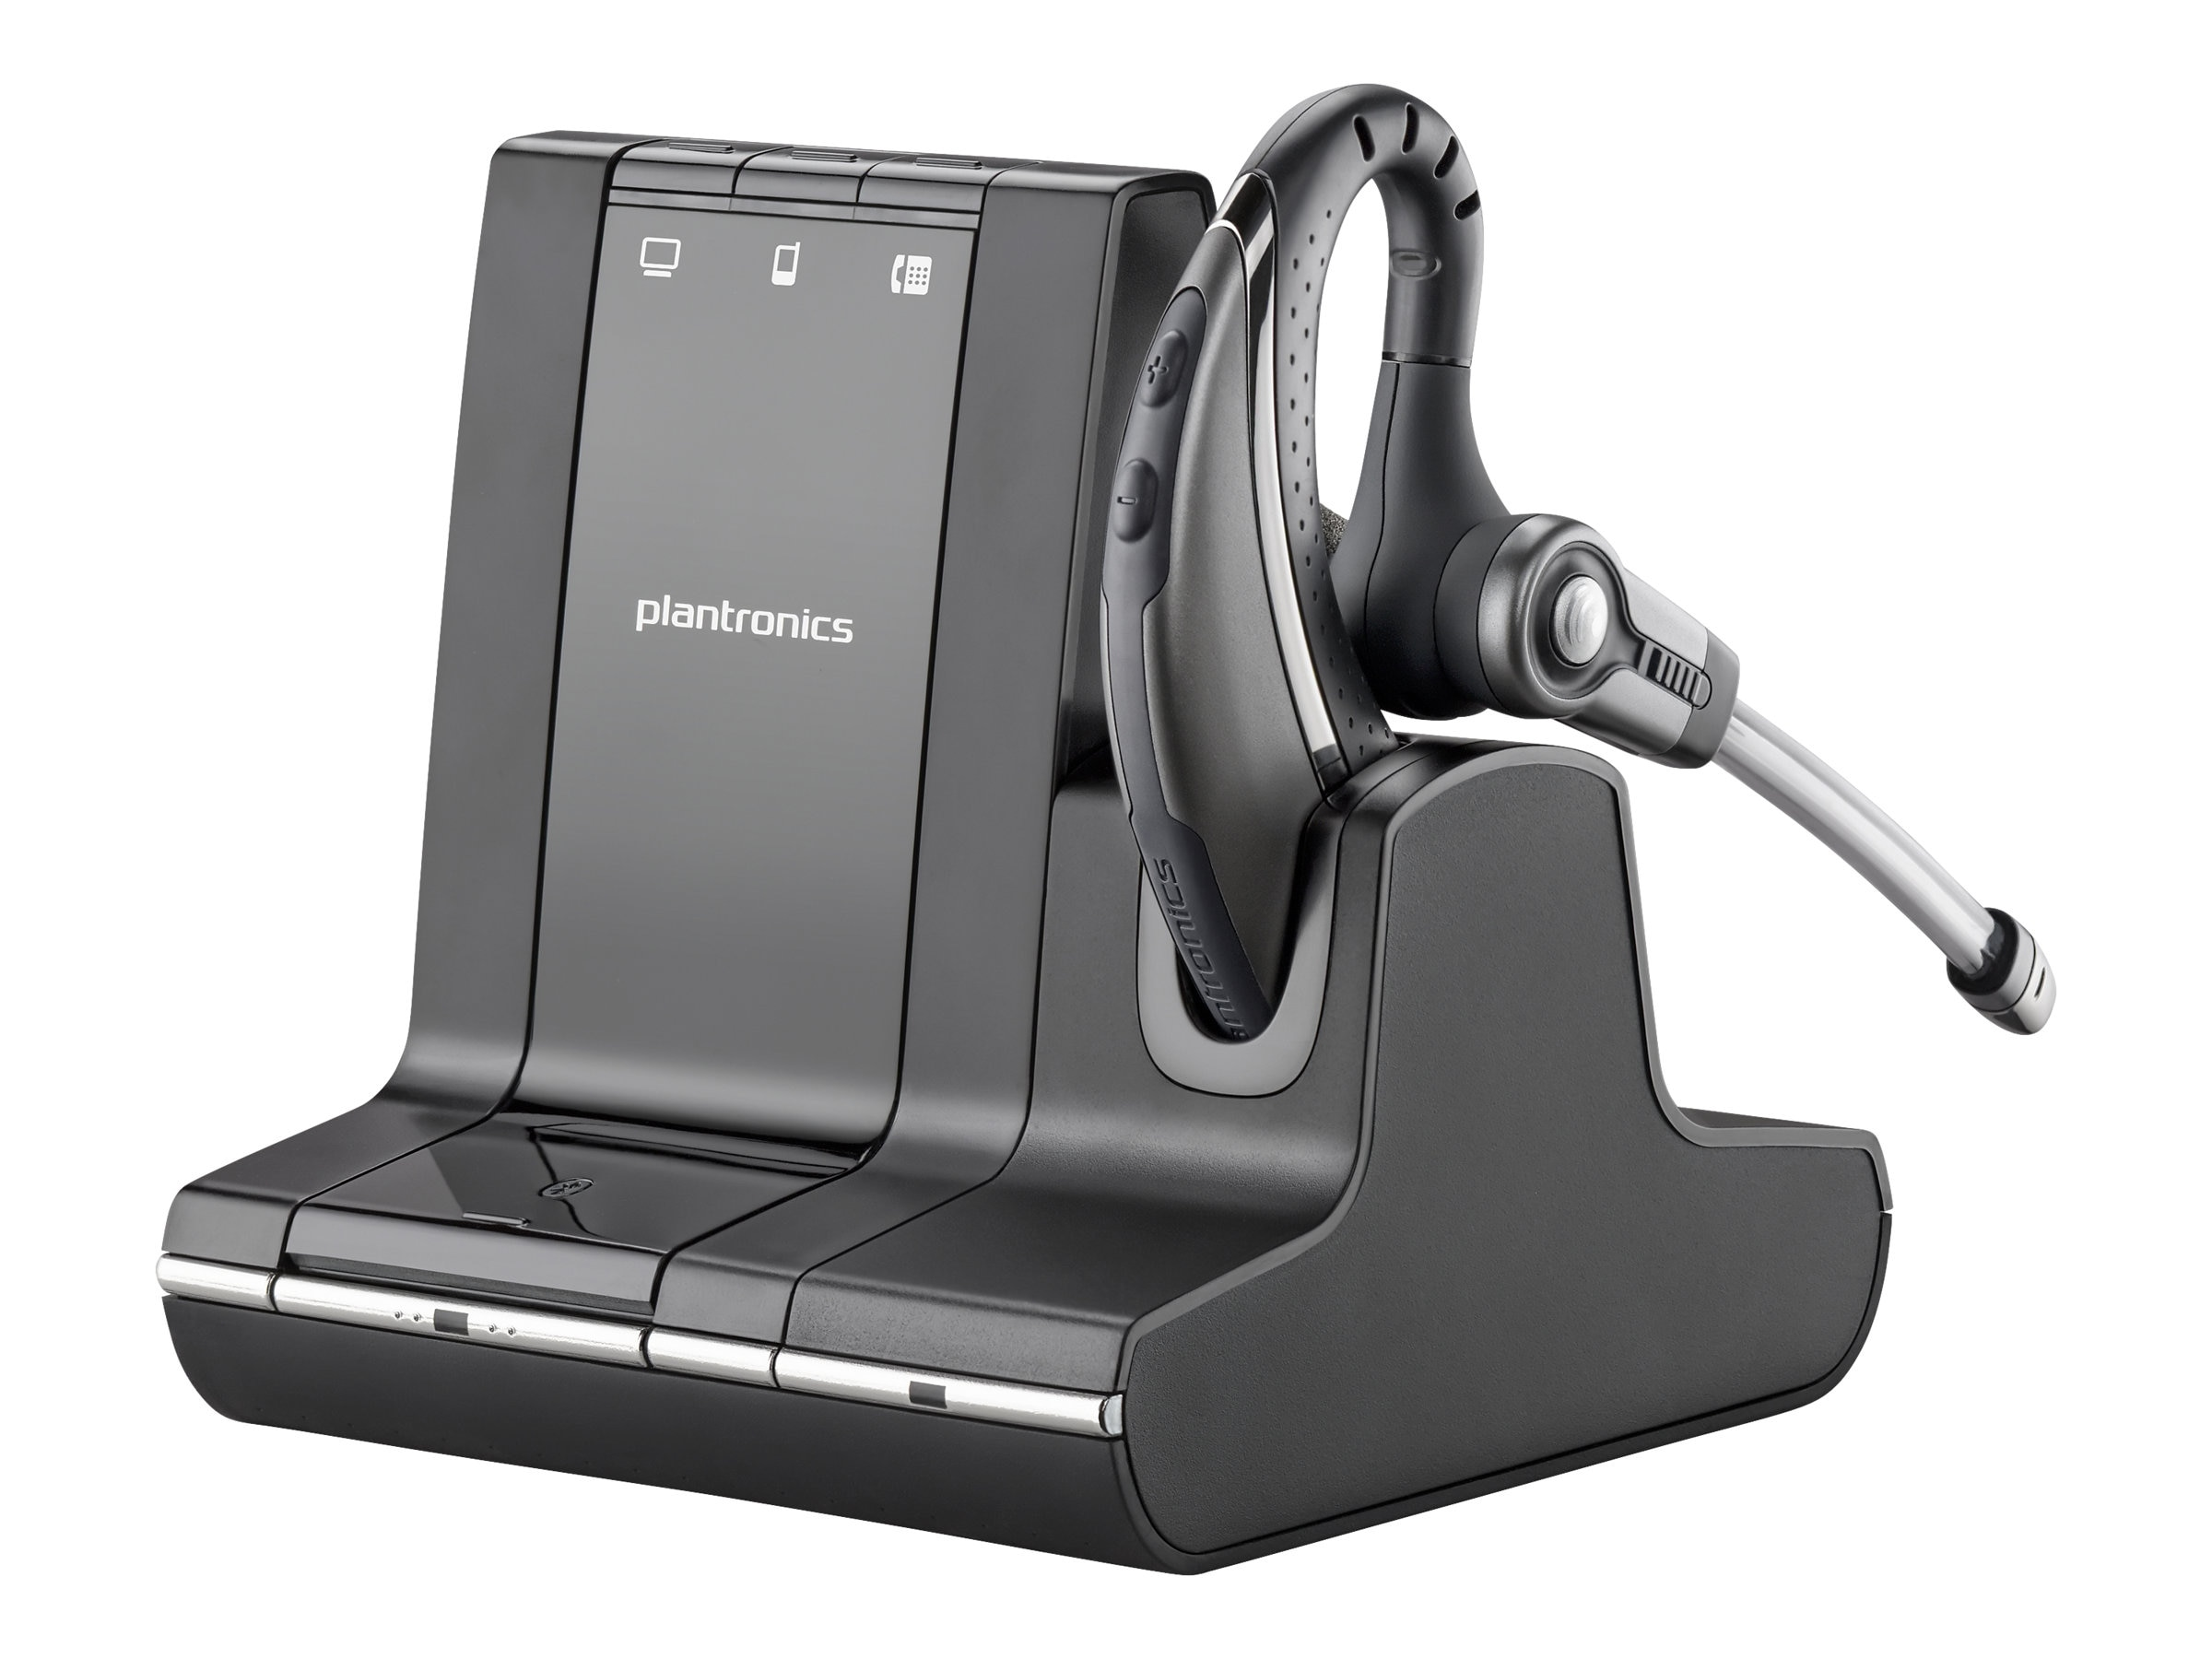 Plantronics Savi W730-M Over-the-Ear Wireless Headset System for MS, 84002-01